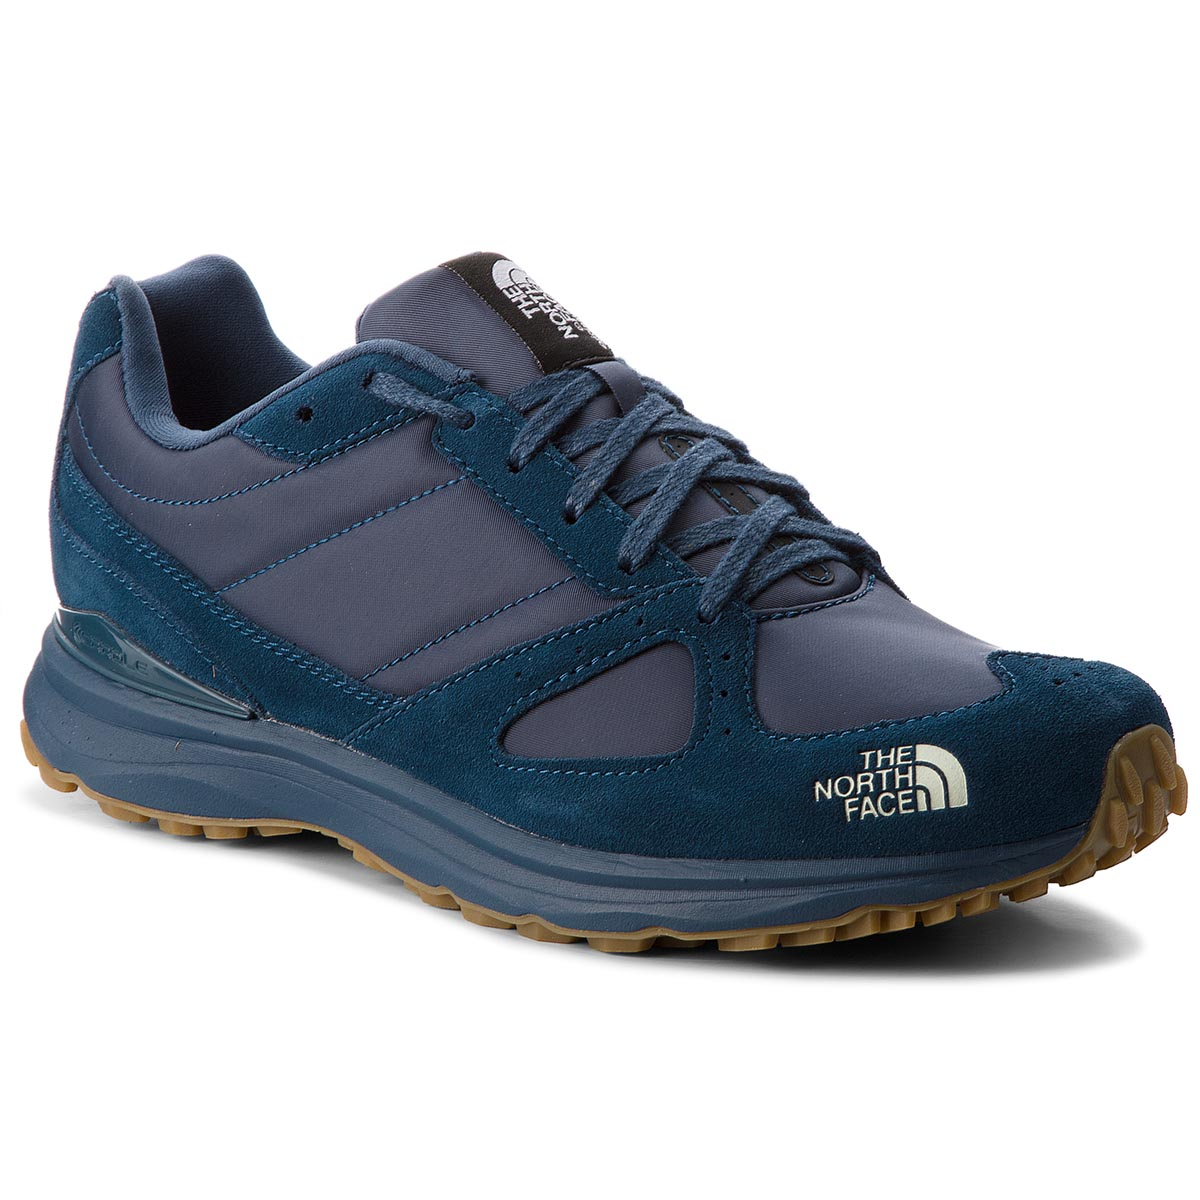 Trekkings THE NORTH FACE - Traverse Tr Nylon T92RSX2RX Blue Wing Teal/Vintage White